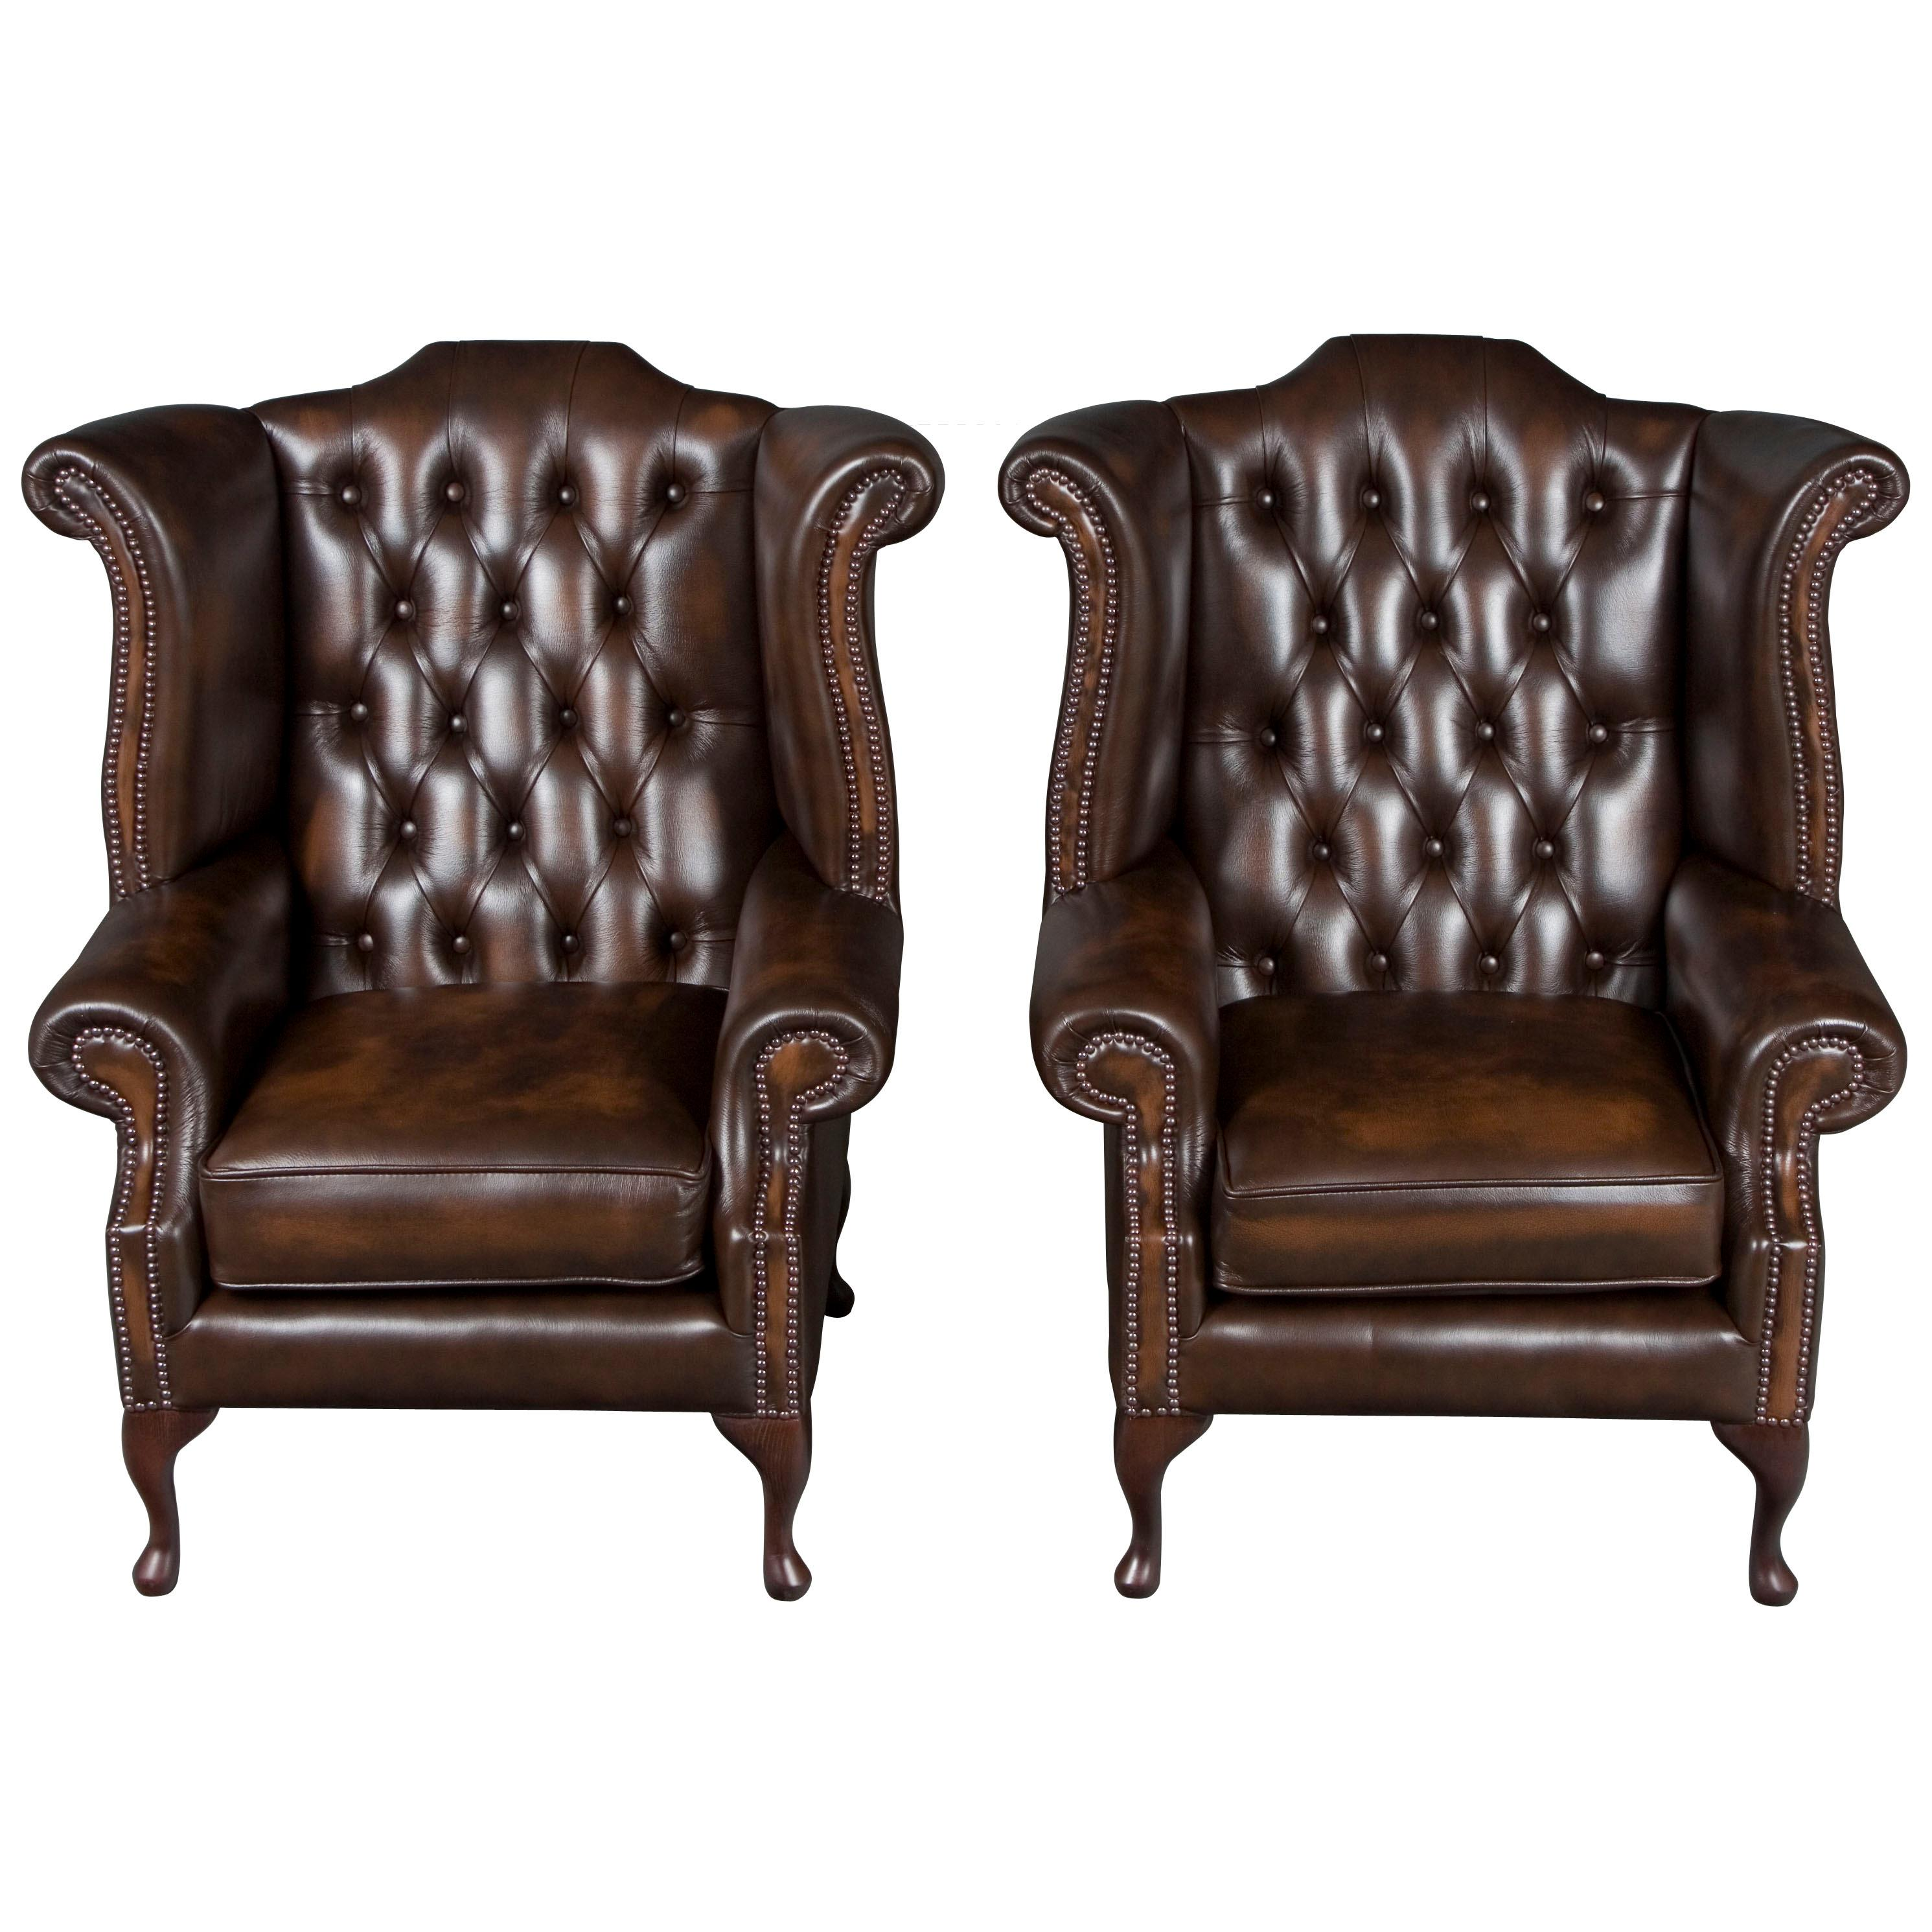 Home, Furniture & Diy Reproduction Chairs Nice Museum Quality Antique Chesterfield Style Leather Handmade Wingback Armchair Special Buy